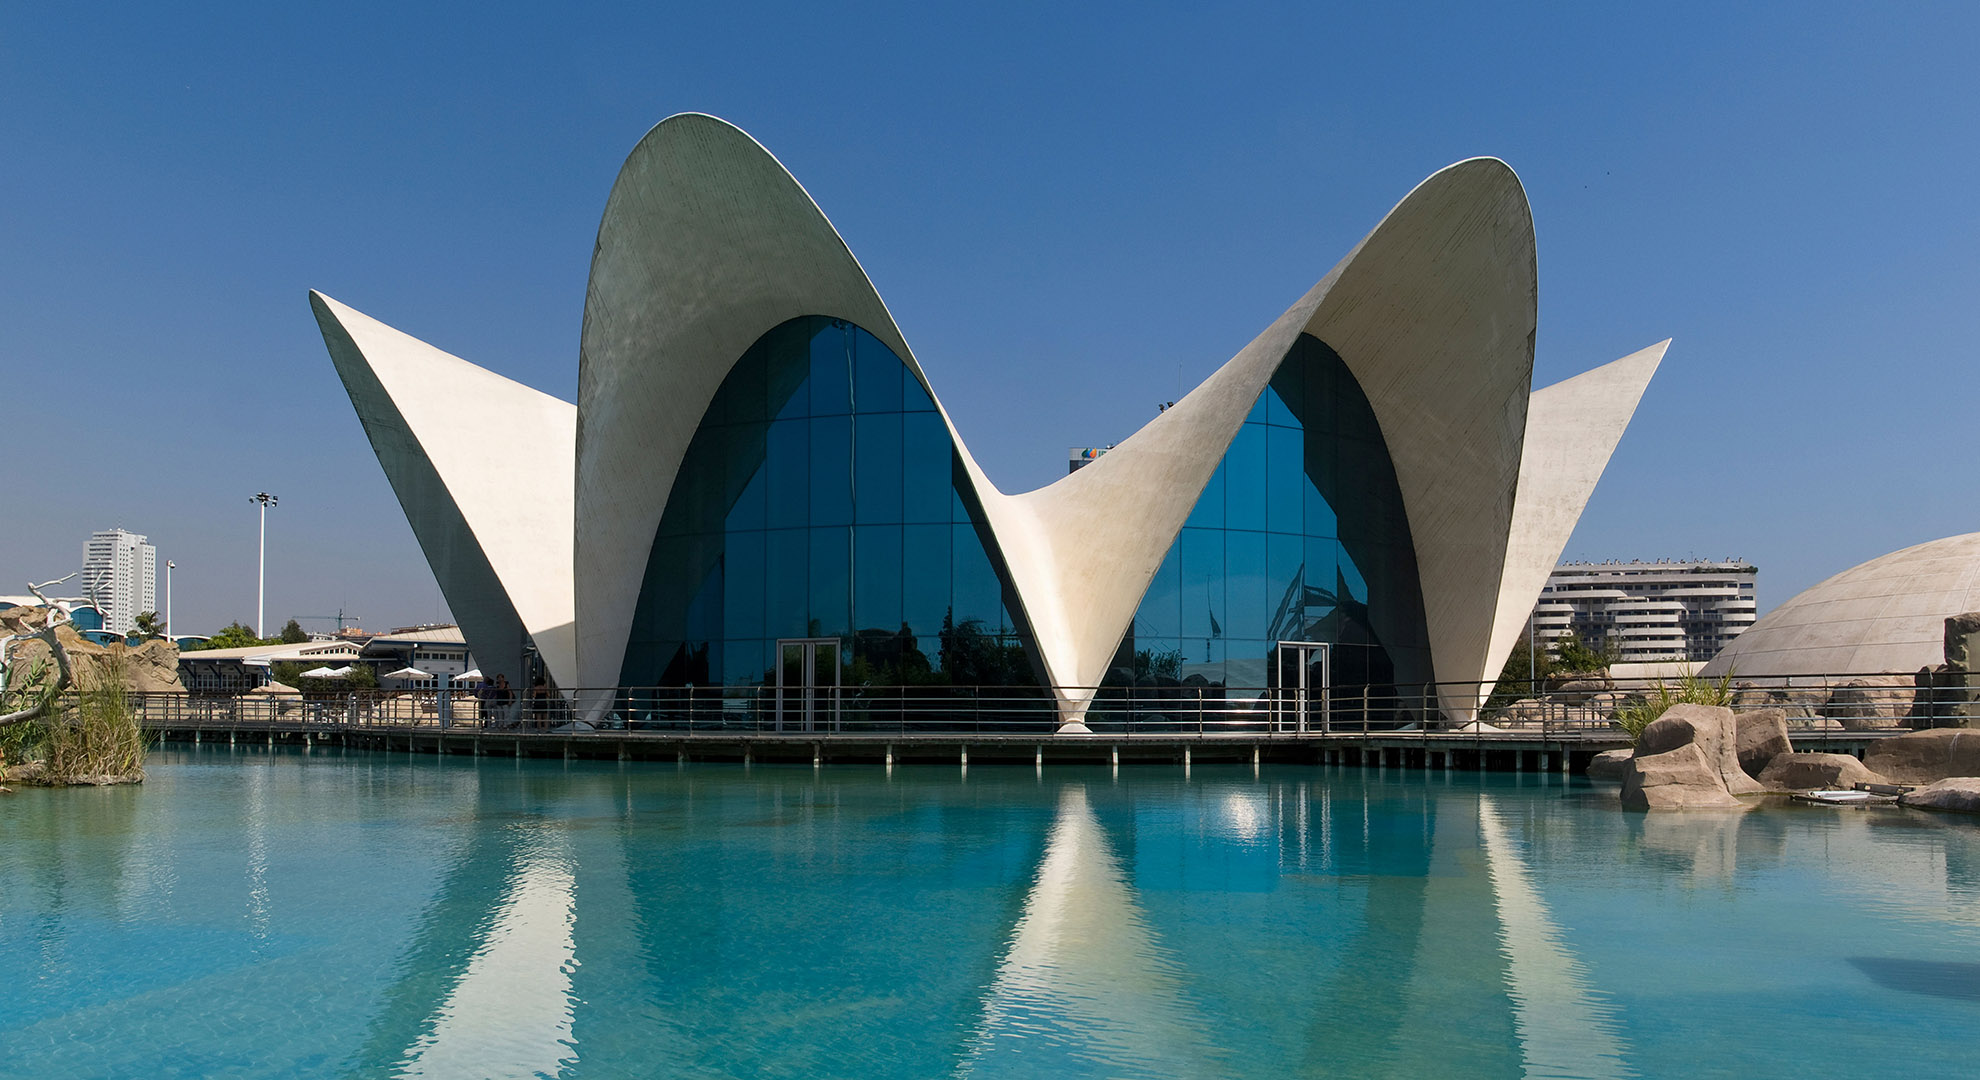 Aquarium architecture in Valencia